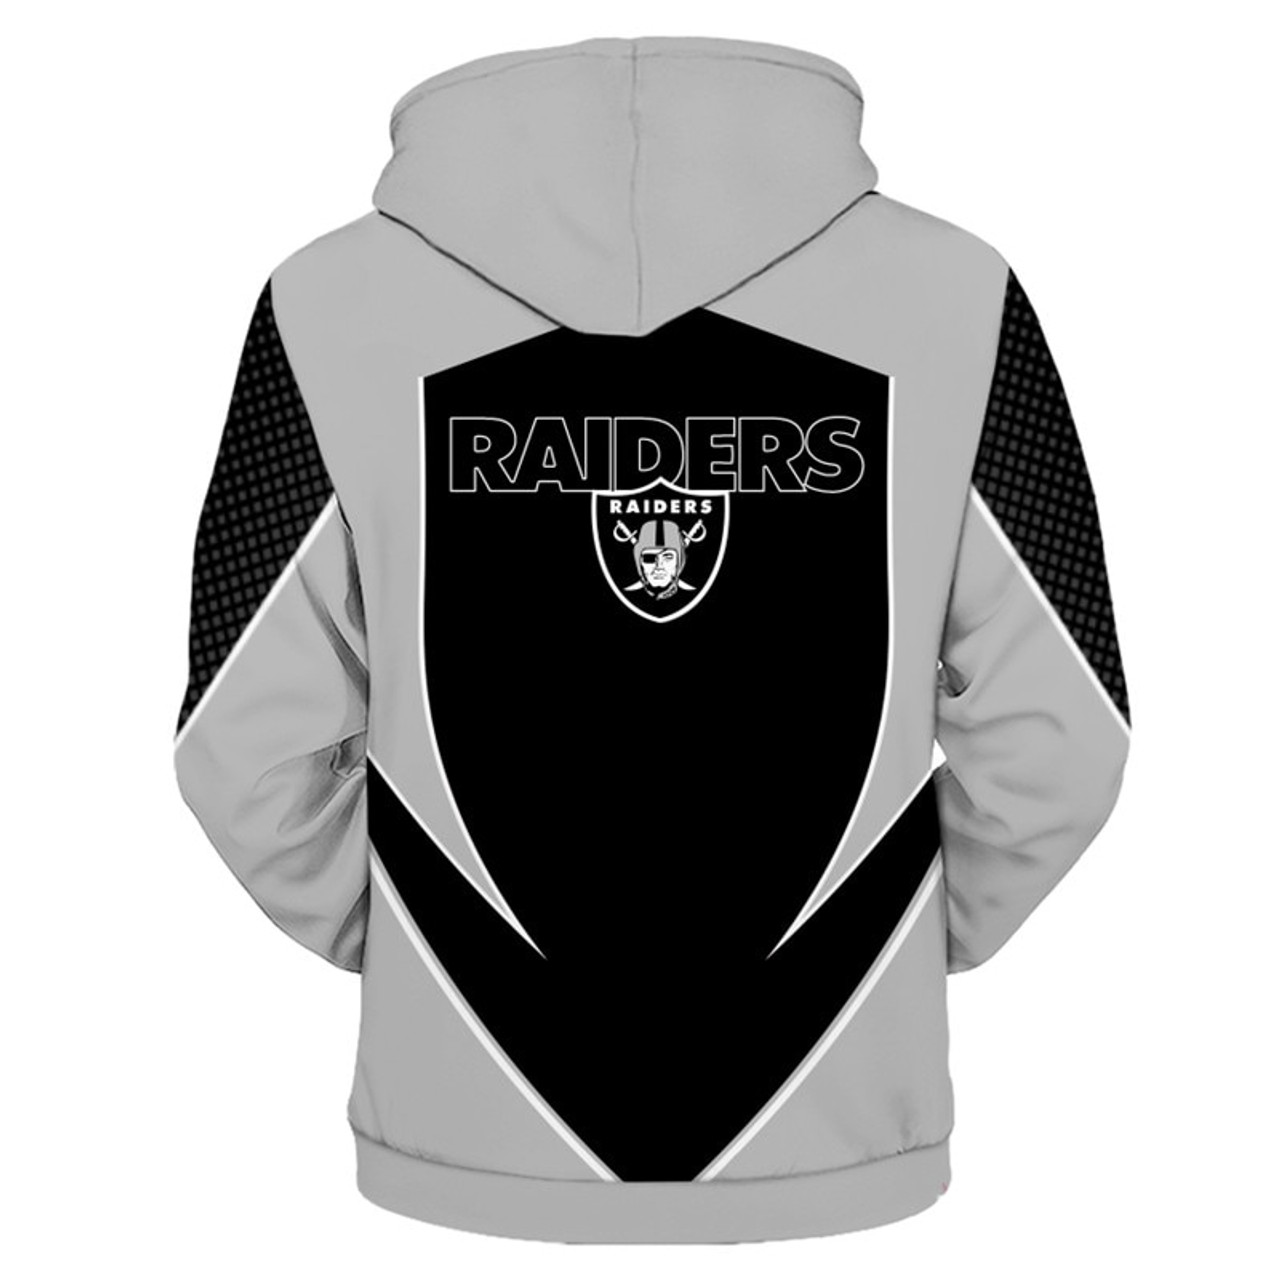 0564a76646b **(OFFICIALLY-LICENSED-N.F.L.OAKLAND-RAIDERS-TEAM-PULLOVER-HOODIES/NEW-CUSTOM-3D-GRAPHIC-PRINTED-DOUBLE-SIDED-ALL-OVER-OFFICIAL-RAIDERS-LOGOS  & ...